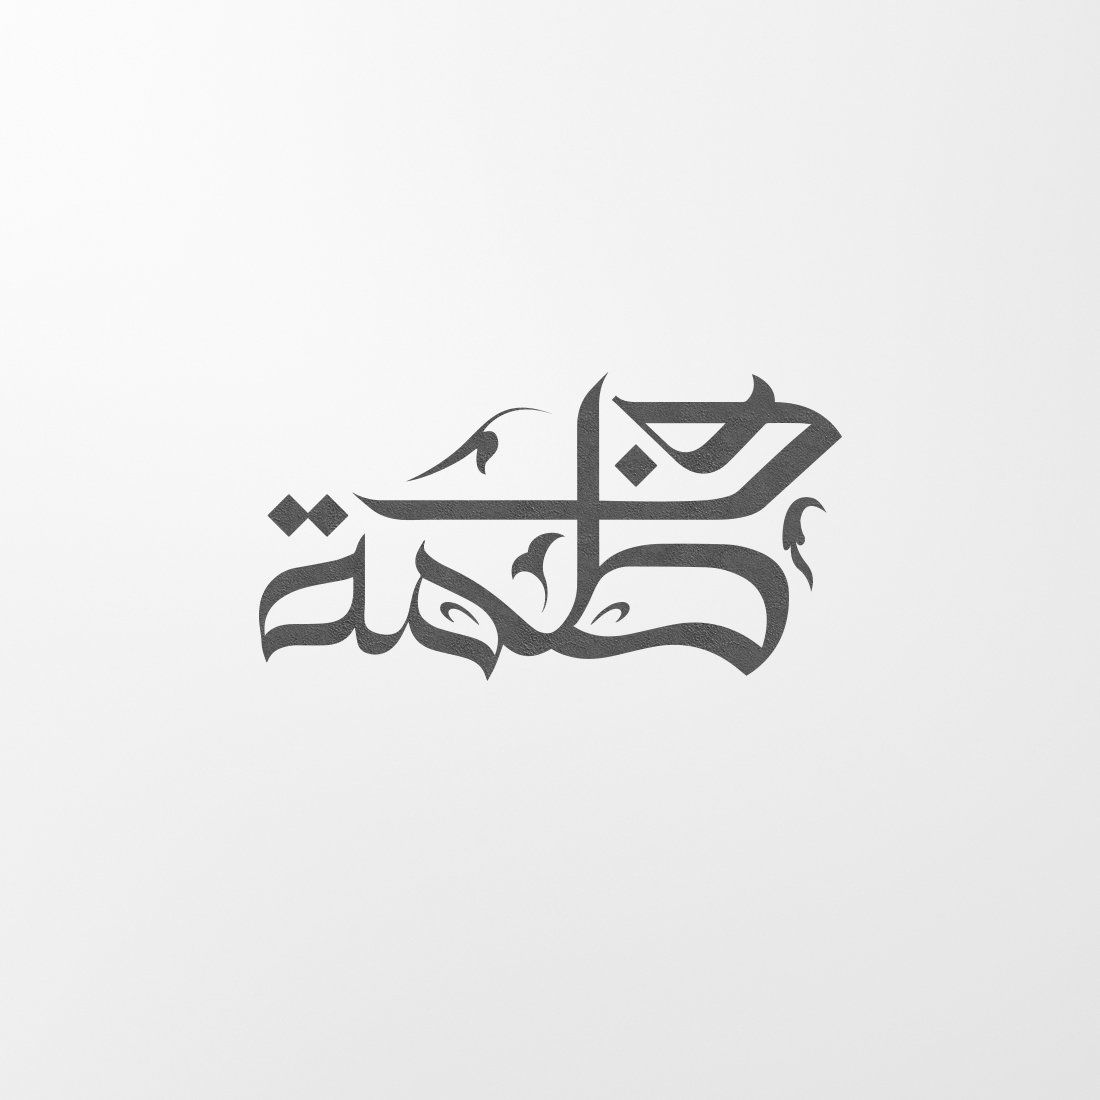 Arabic Calligraphy Of Fatima فاطمة Instant Download Arabic Calligraphy Design Graphic Design Lessons Islamic Calligraphy Painting